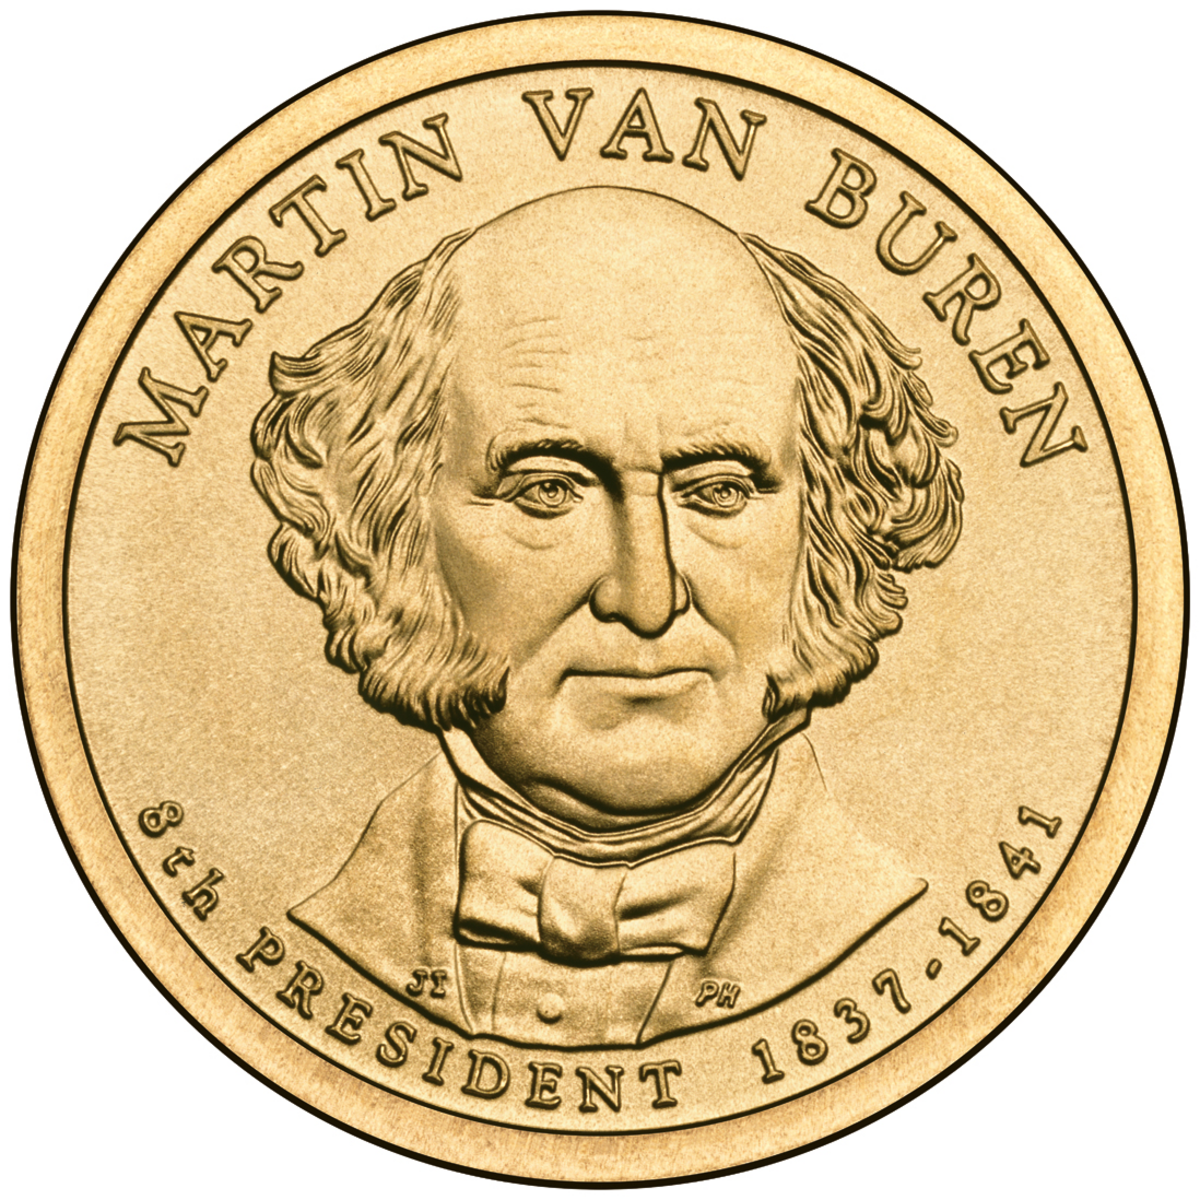 Martin Van Buren Presidential dollar issued in 2008.